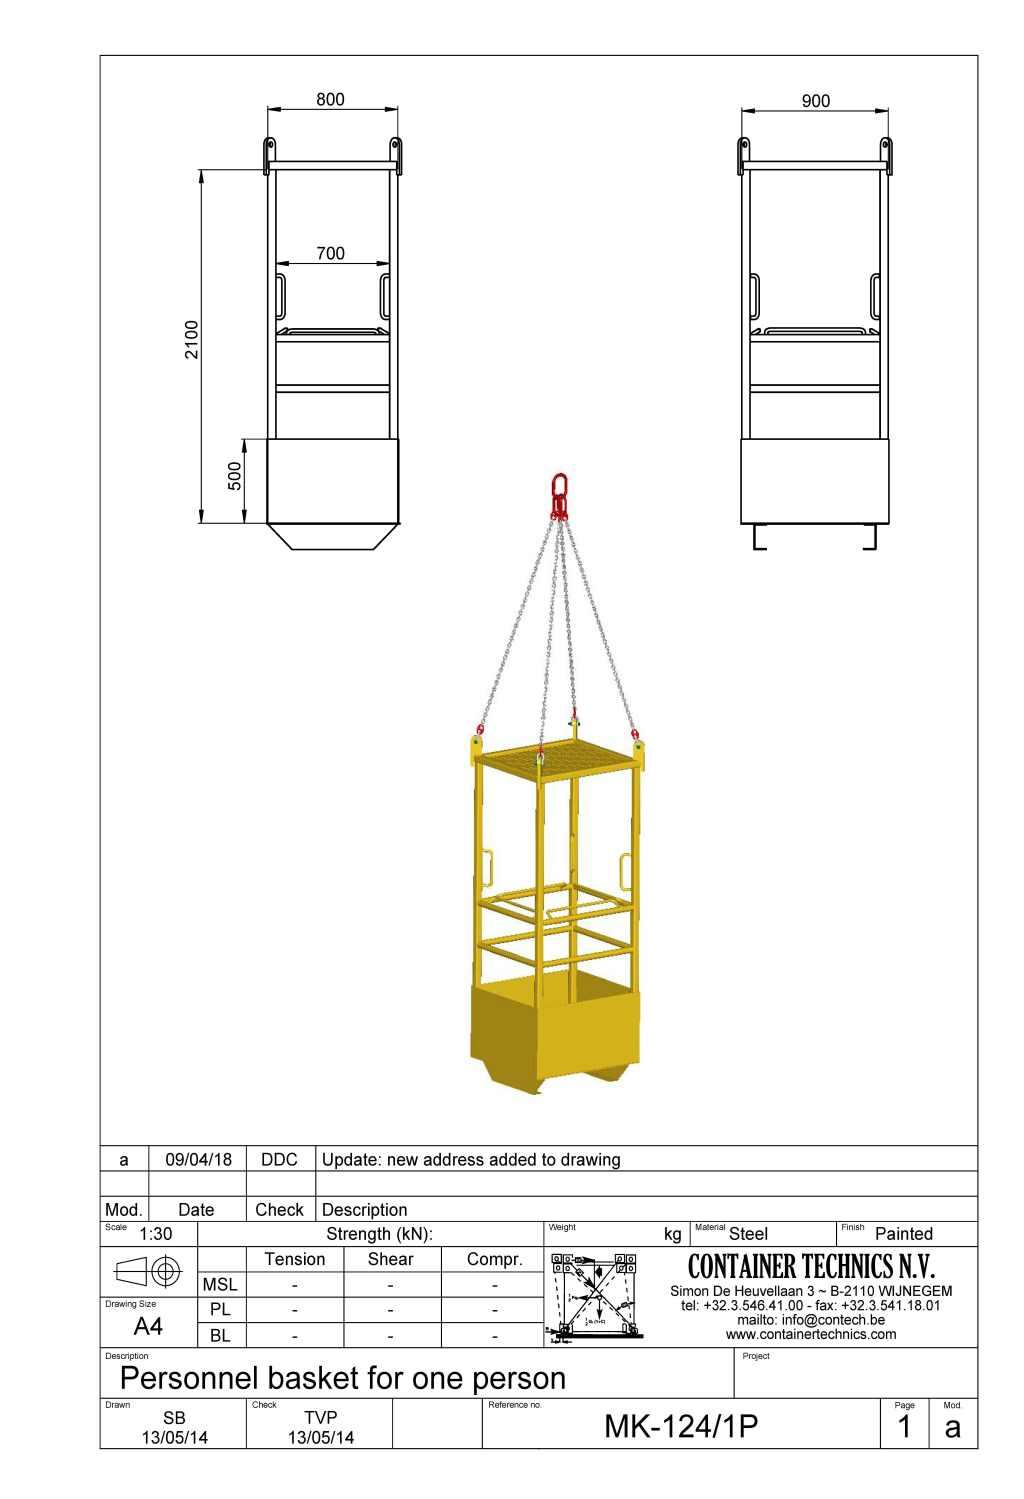 MK-124/1P Personnel lifting basket for 1 person